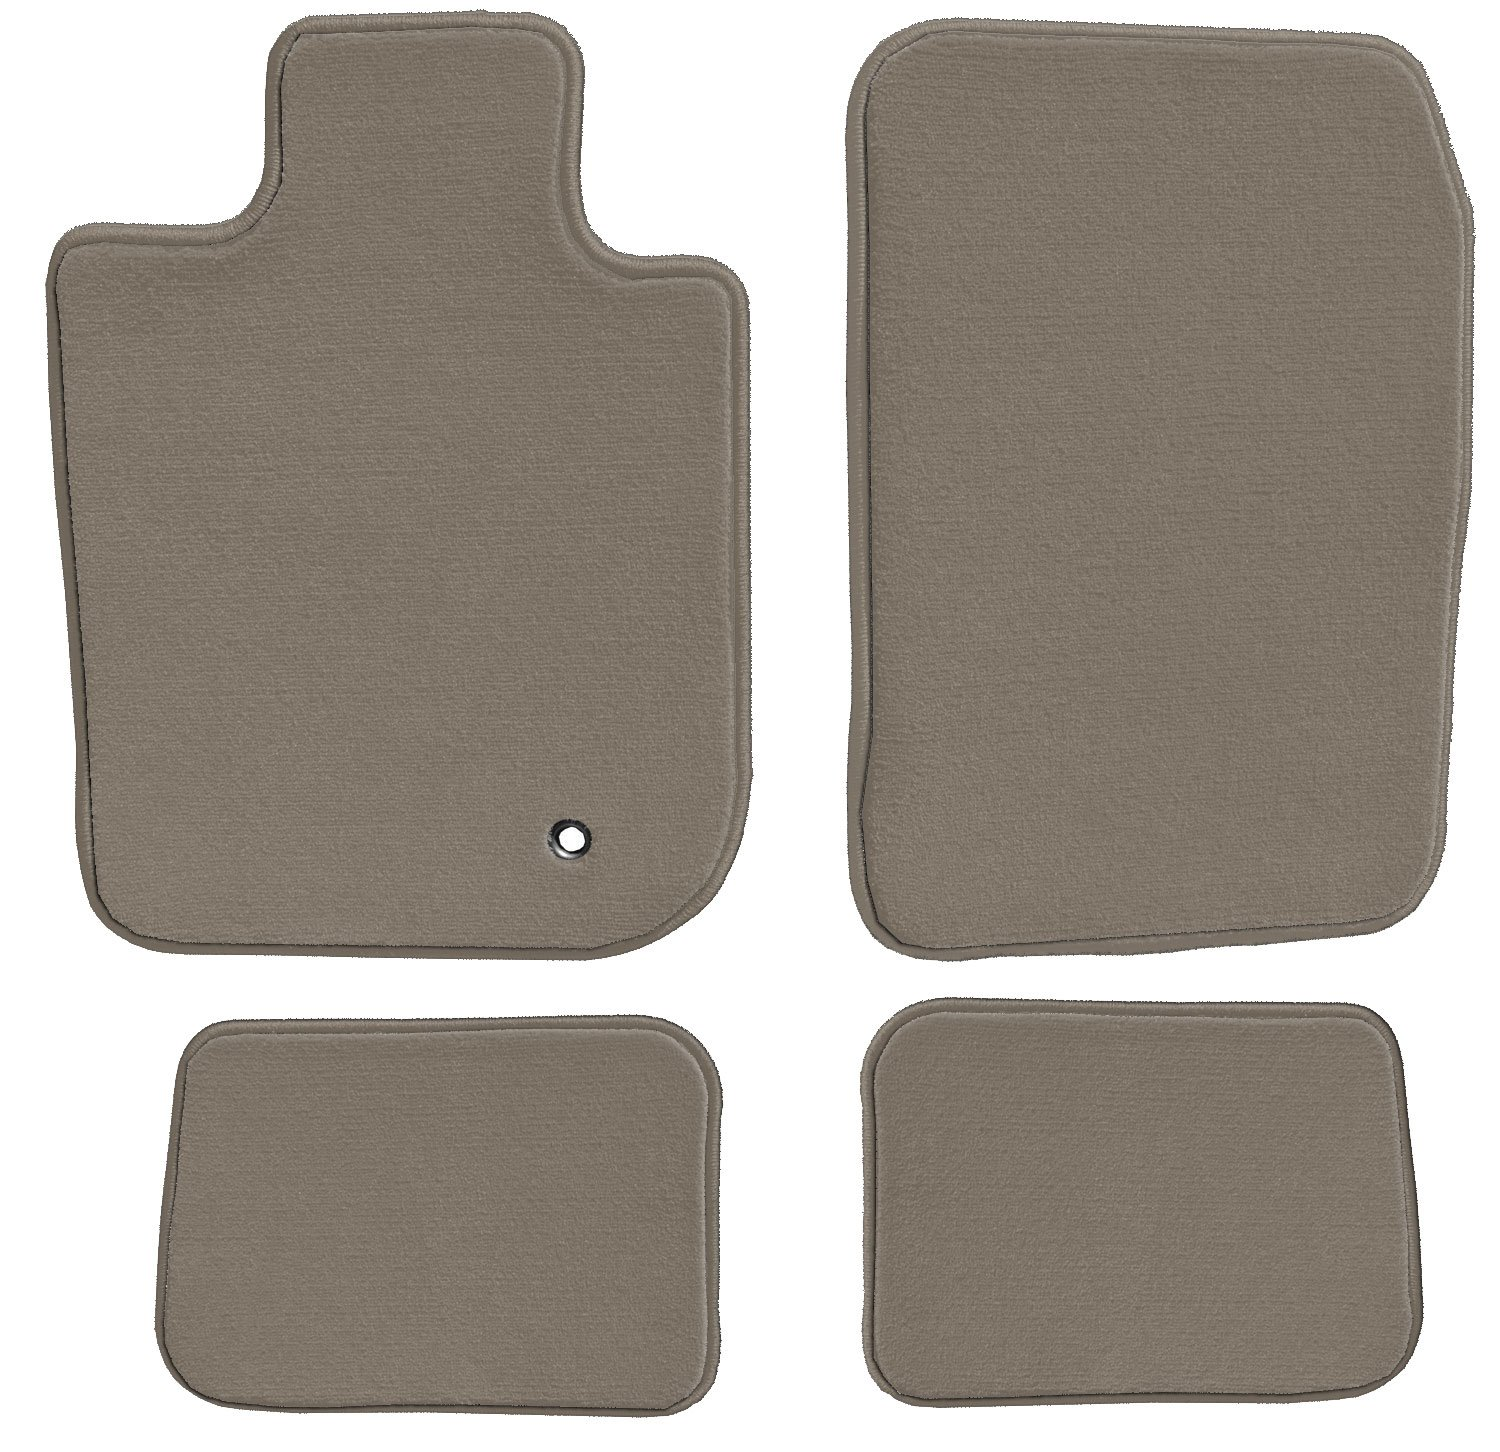 GGBAILEY D51488-S1A-BG-LP Custom Fit Car Mats for 2017 Ford Fusion Beige Loop Driver Passenger /& Rear Floor